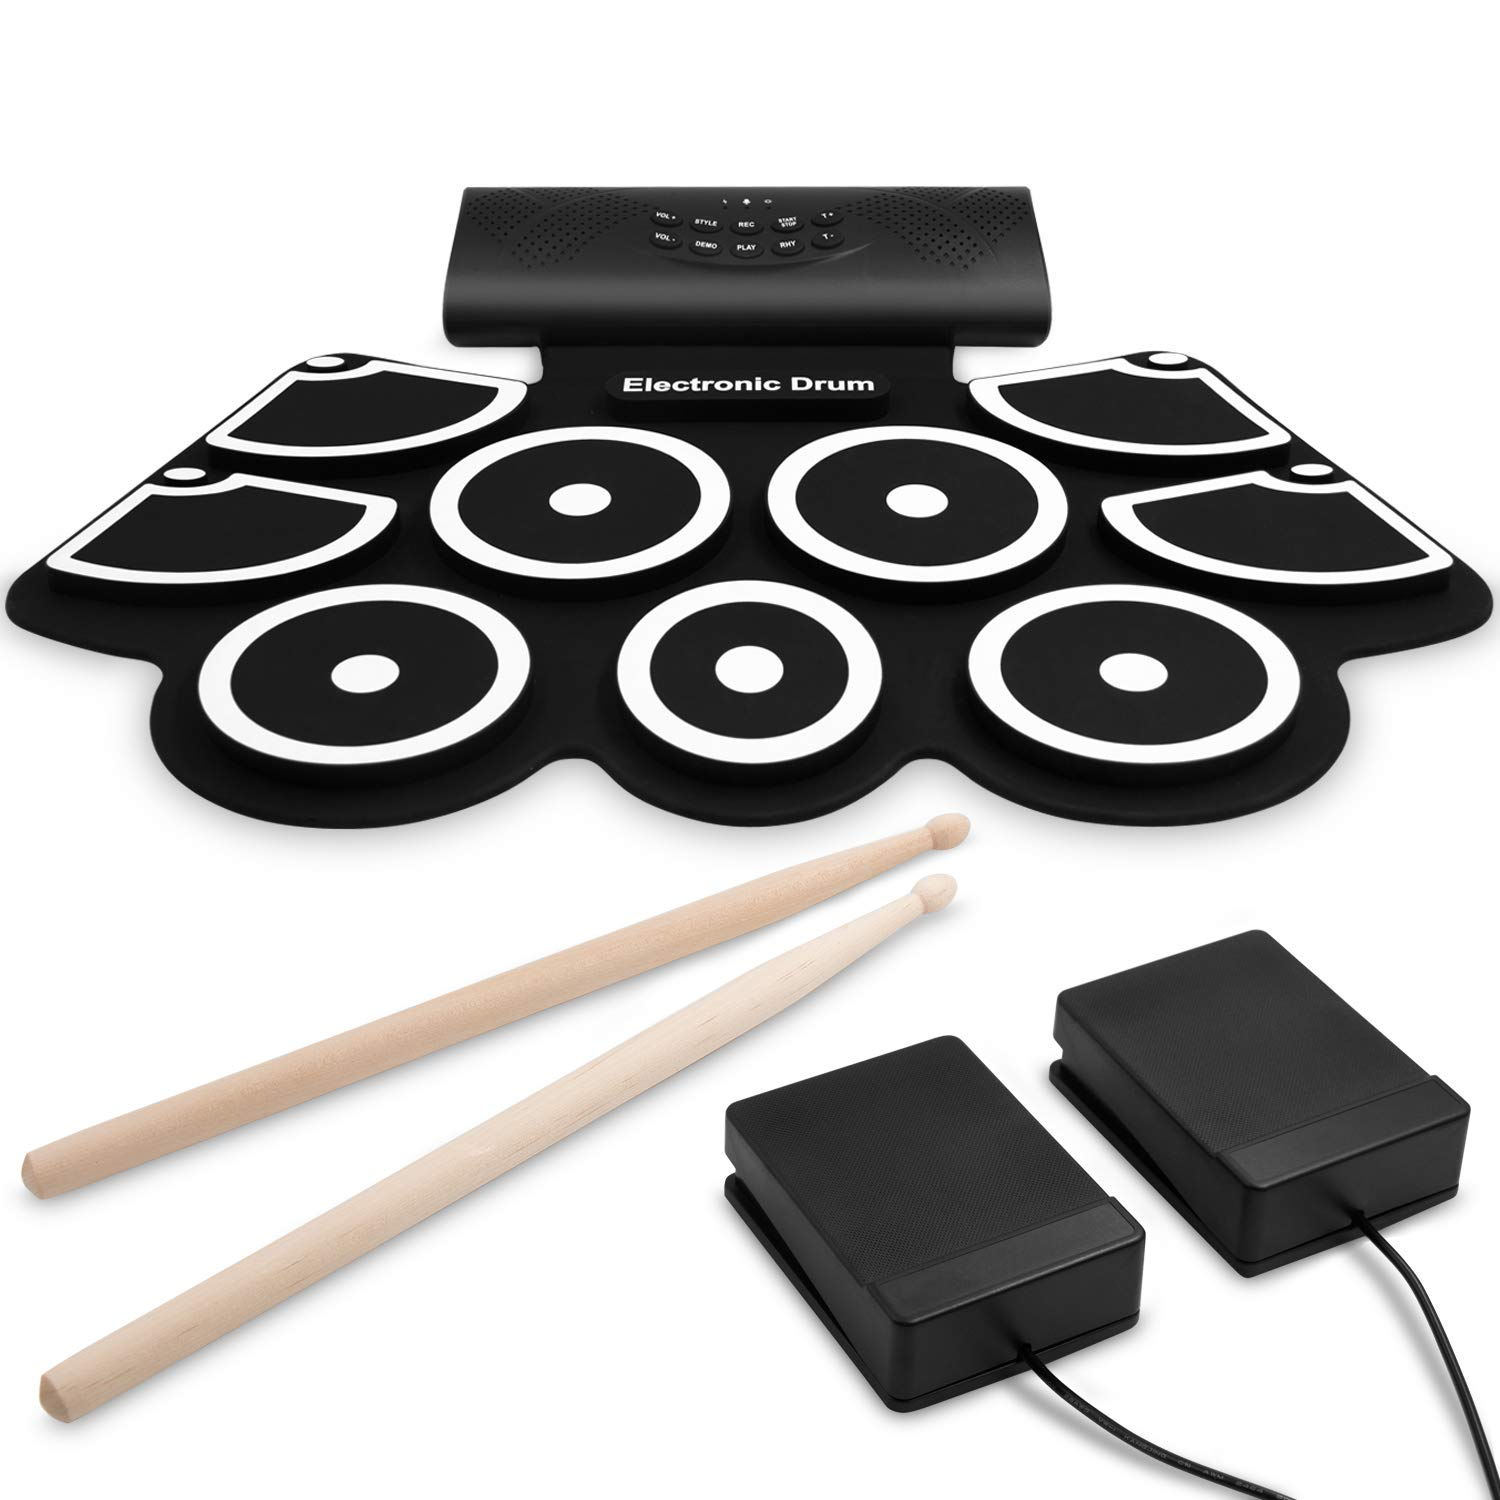 9-Pads Electronic Drum Set [Bluetooth Upgraded Version], Thickened Hand Roll Up Drum Practice Pad, Built in Speakers, Rechargeable Battery, MIDI Function, Great Gift for Kids, Beginner by Veetop